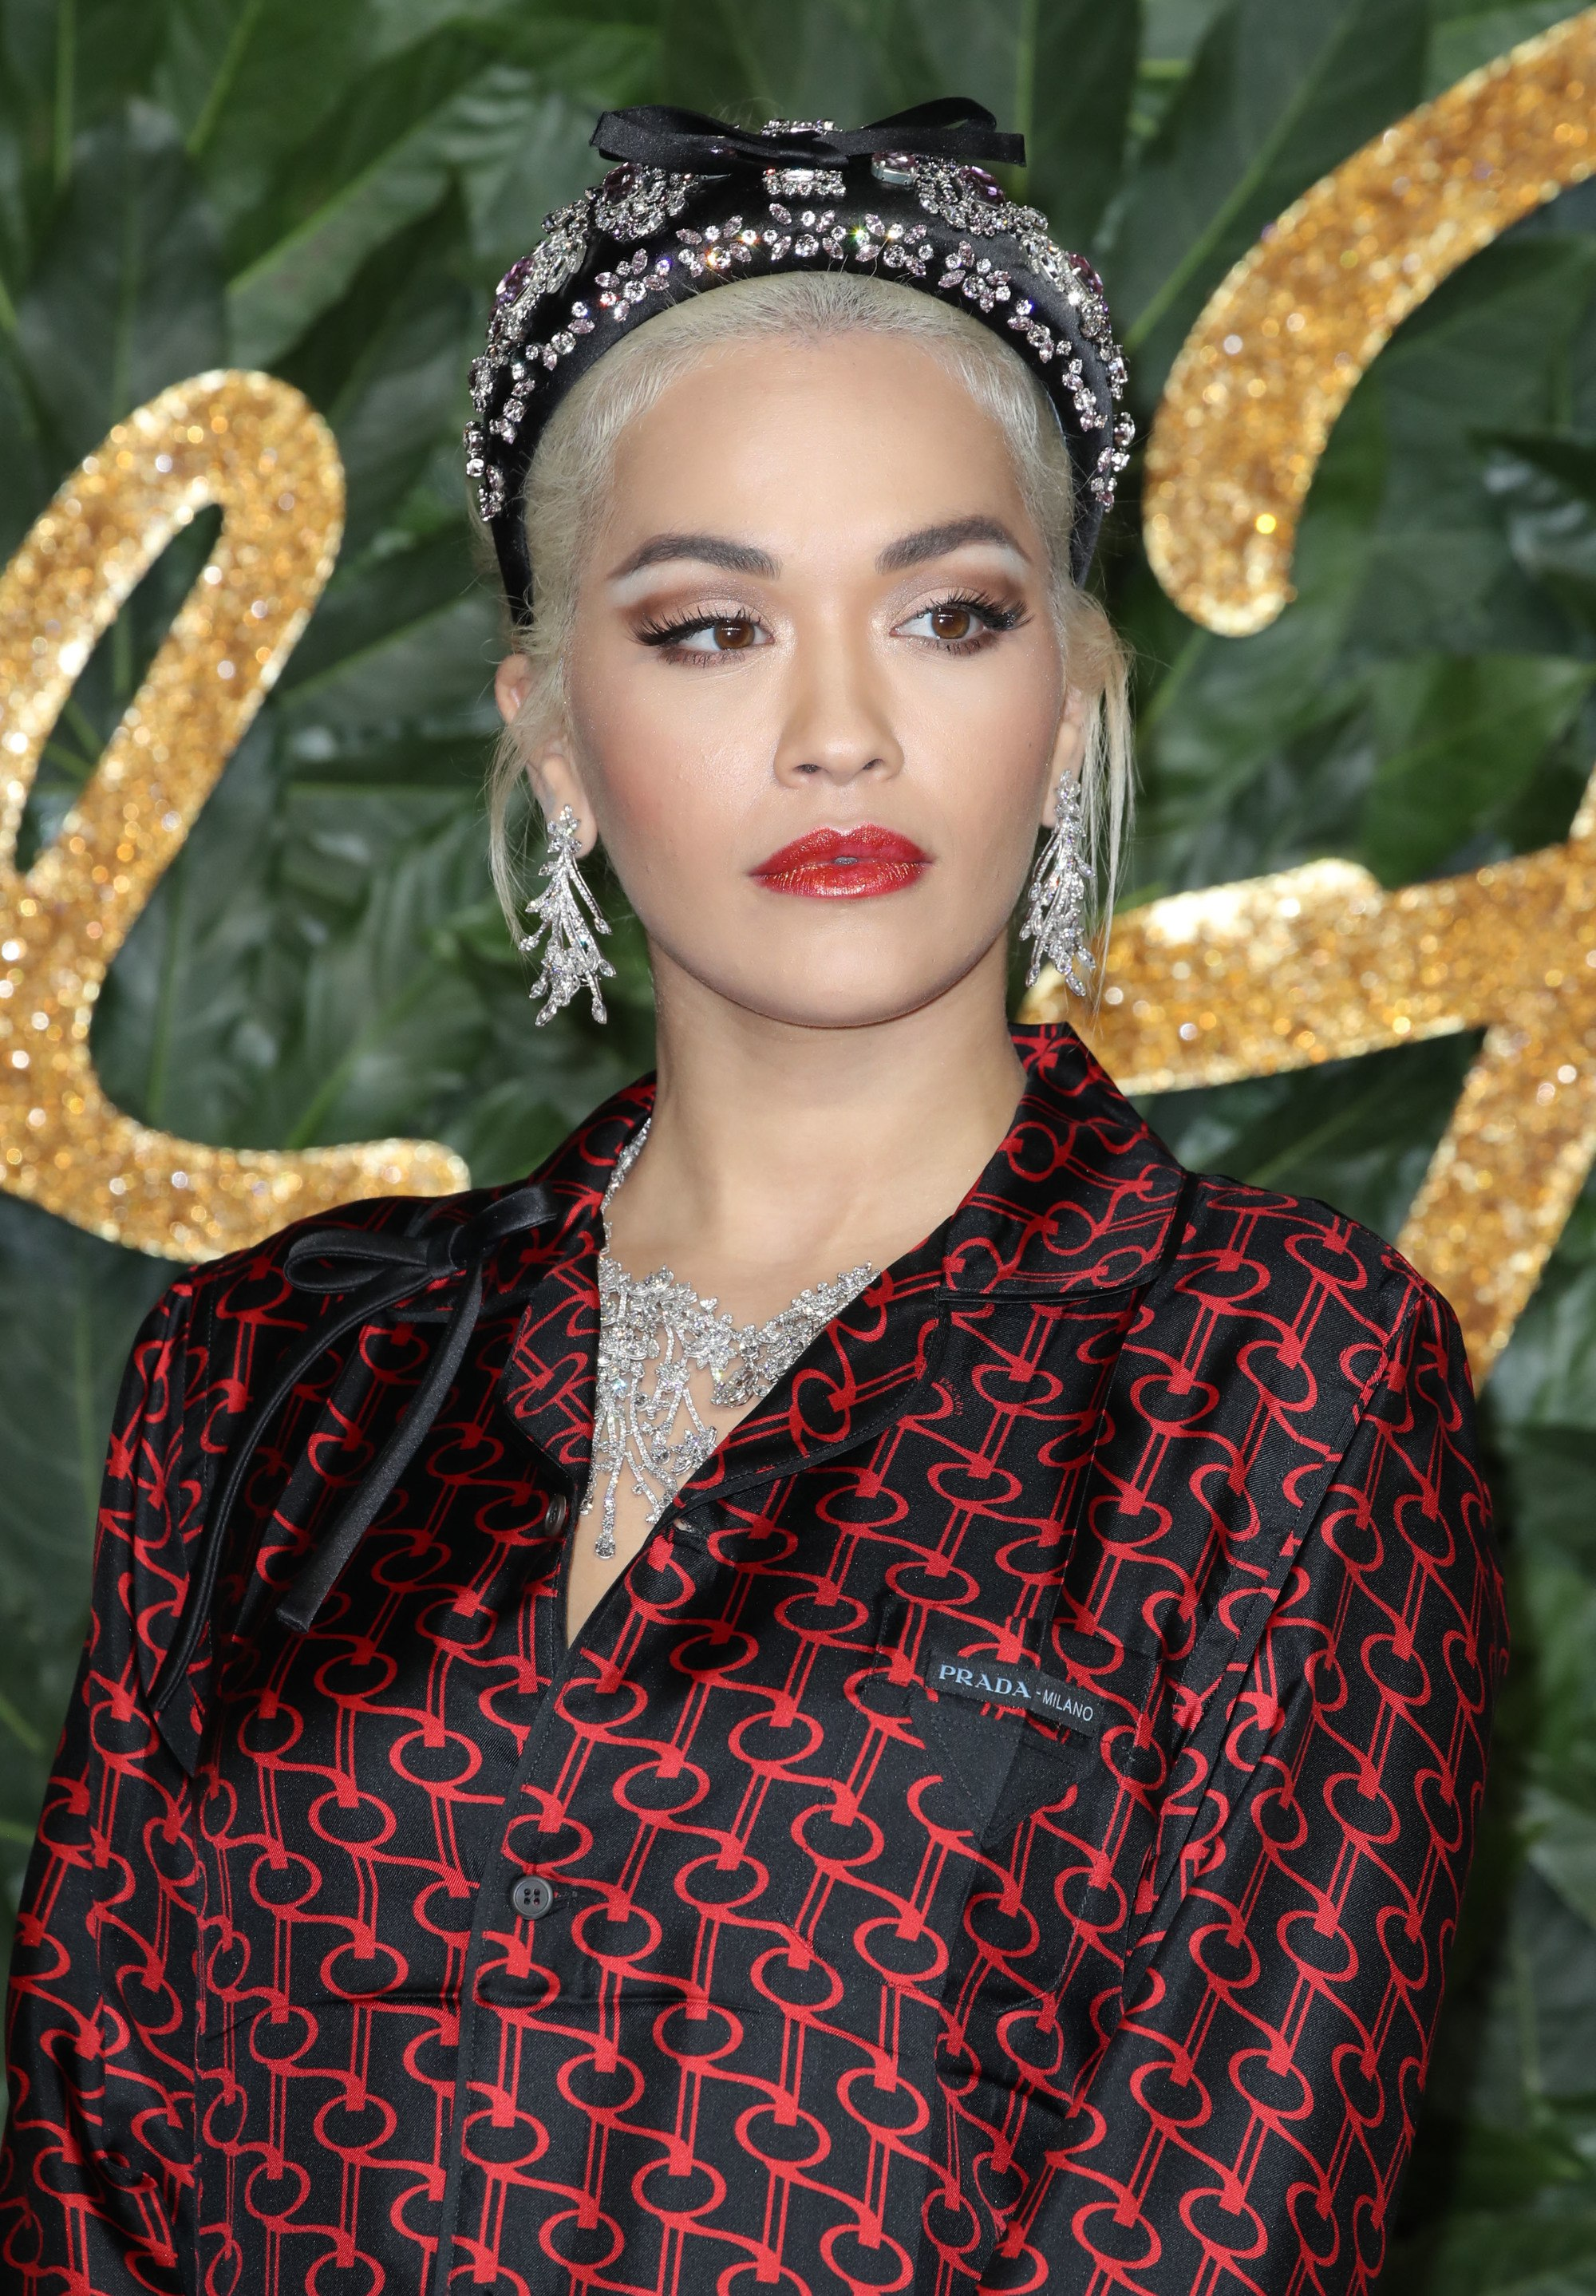 Headband and bandana hairstyles: Rita Ora with bleach blonde white hair in updo wearing a black jewelled headband with a bow and red pattern shirt.